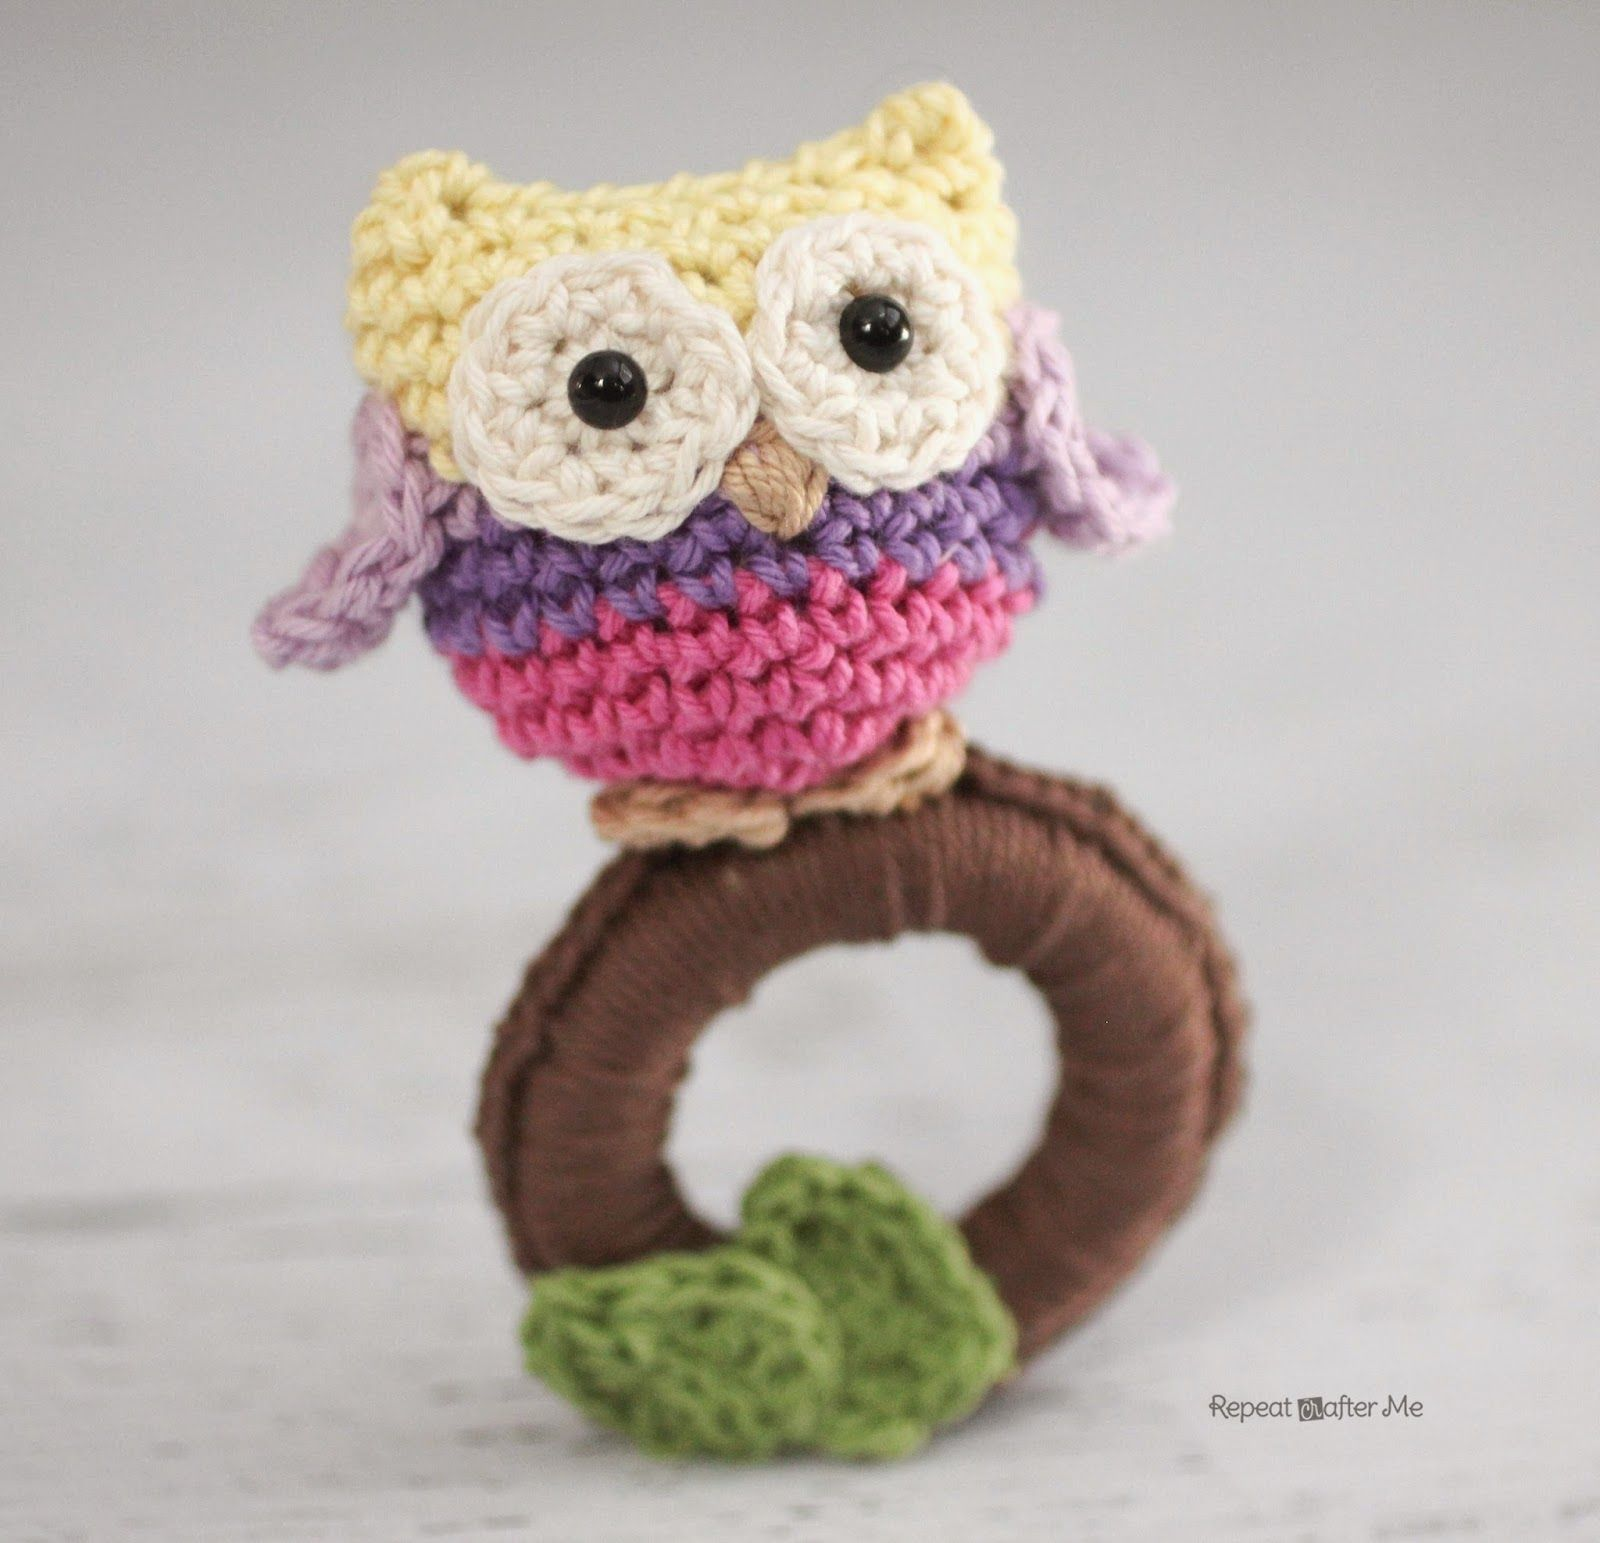 Repeat Crafter Me: Crochet Owl Ring Baby Toy-free pattern | Owls ...